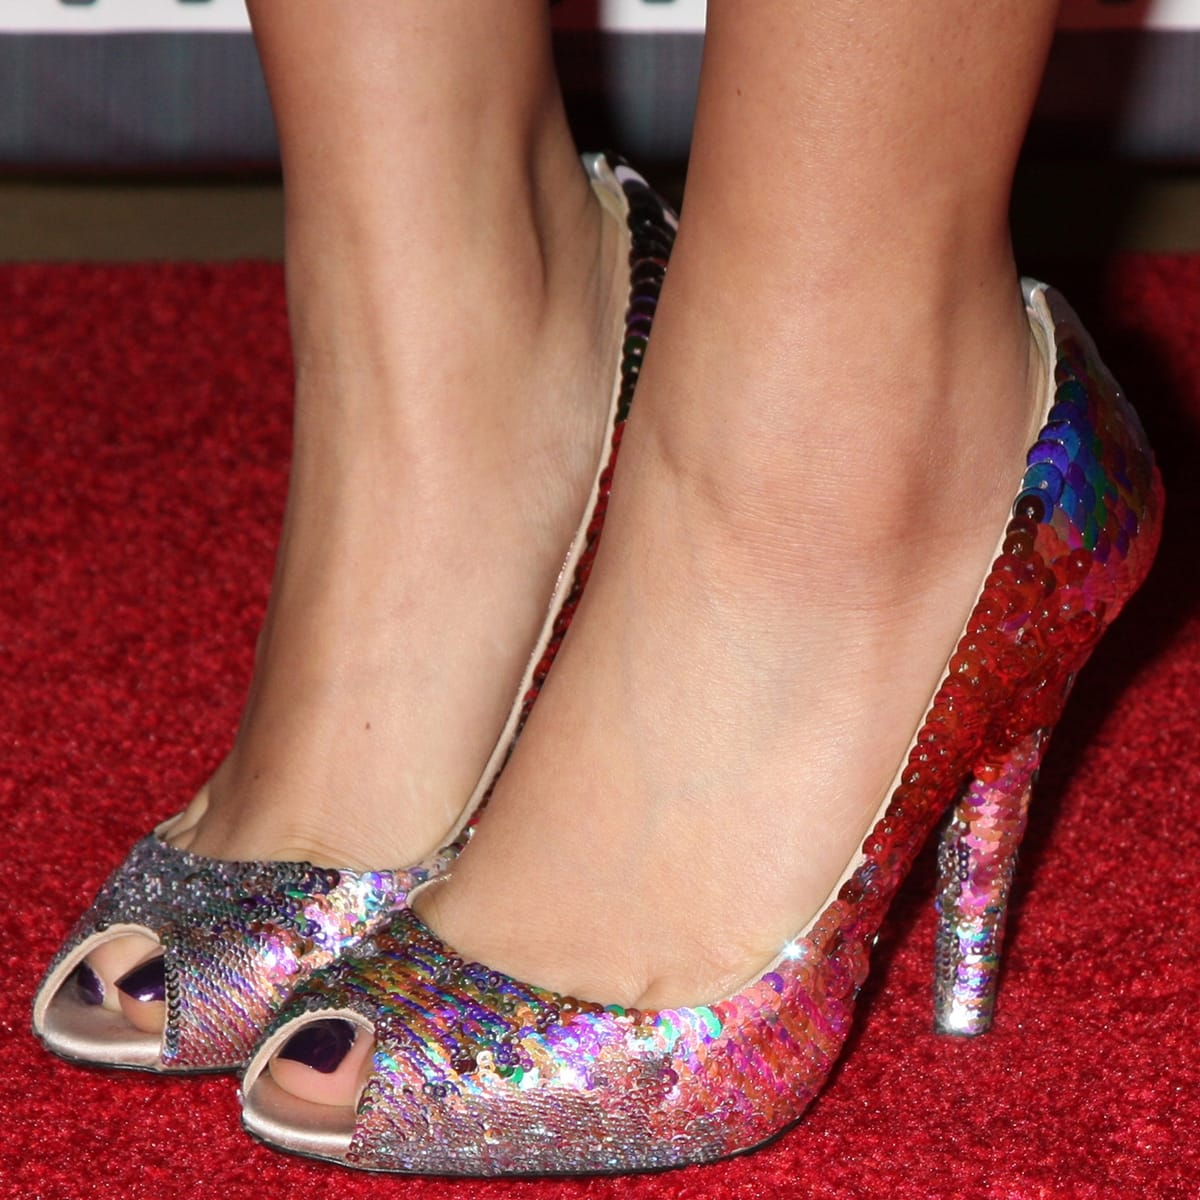 Brenda Song shows off her feet in high heels on the red carpet